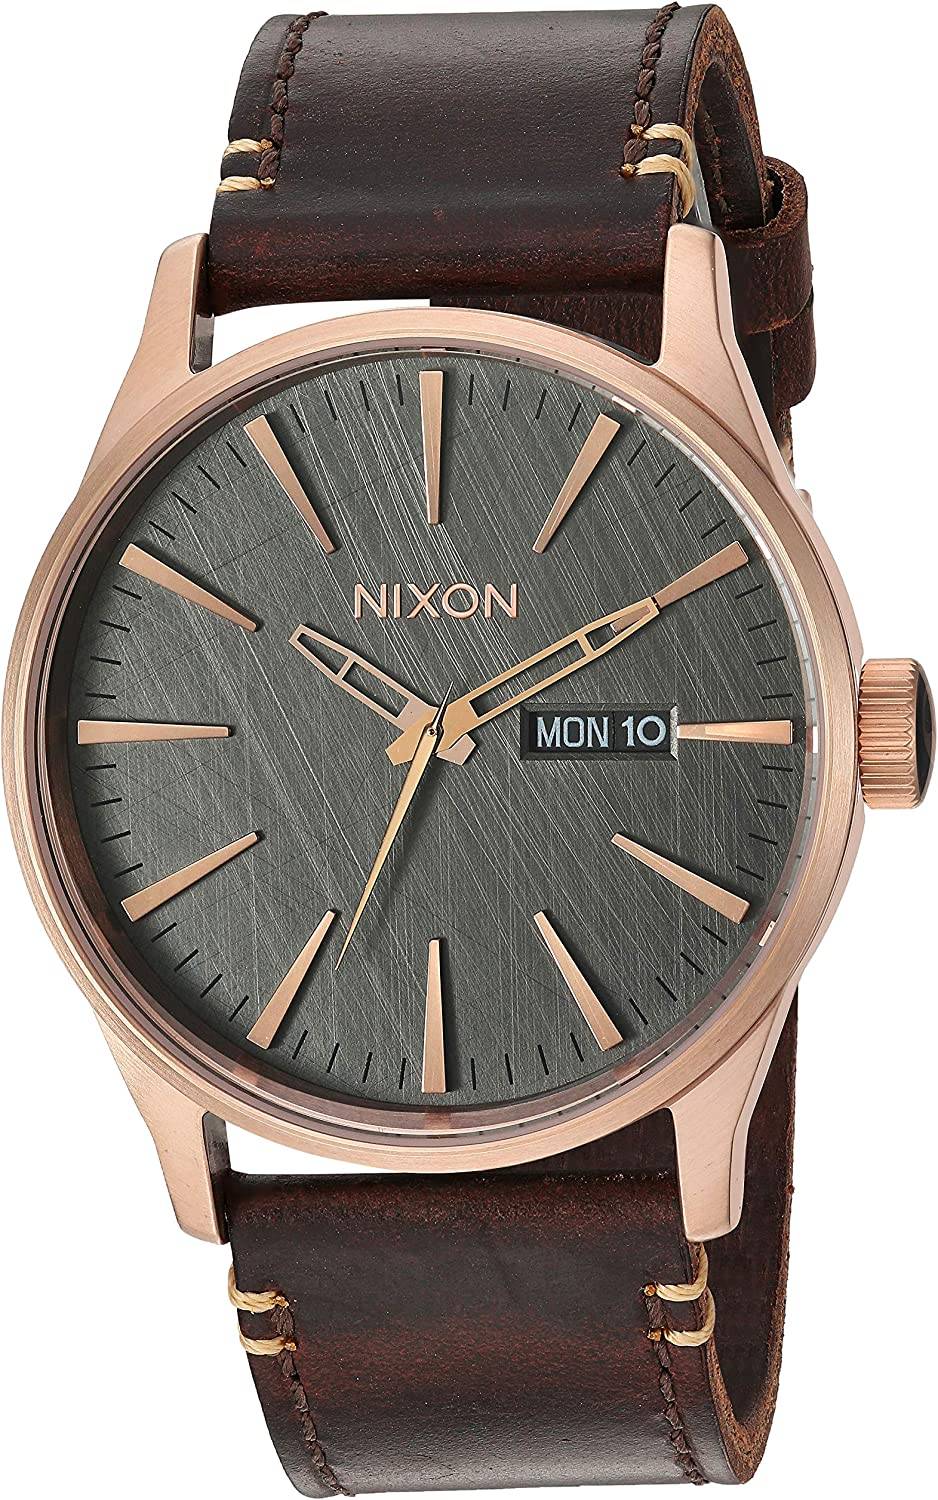 NIXON Men s Stainless Steel Japanese Quartz Fitness Watch with Leather Strap, Rose Gold, 23 Model A1052001-00